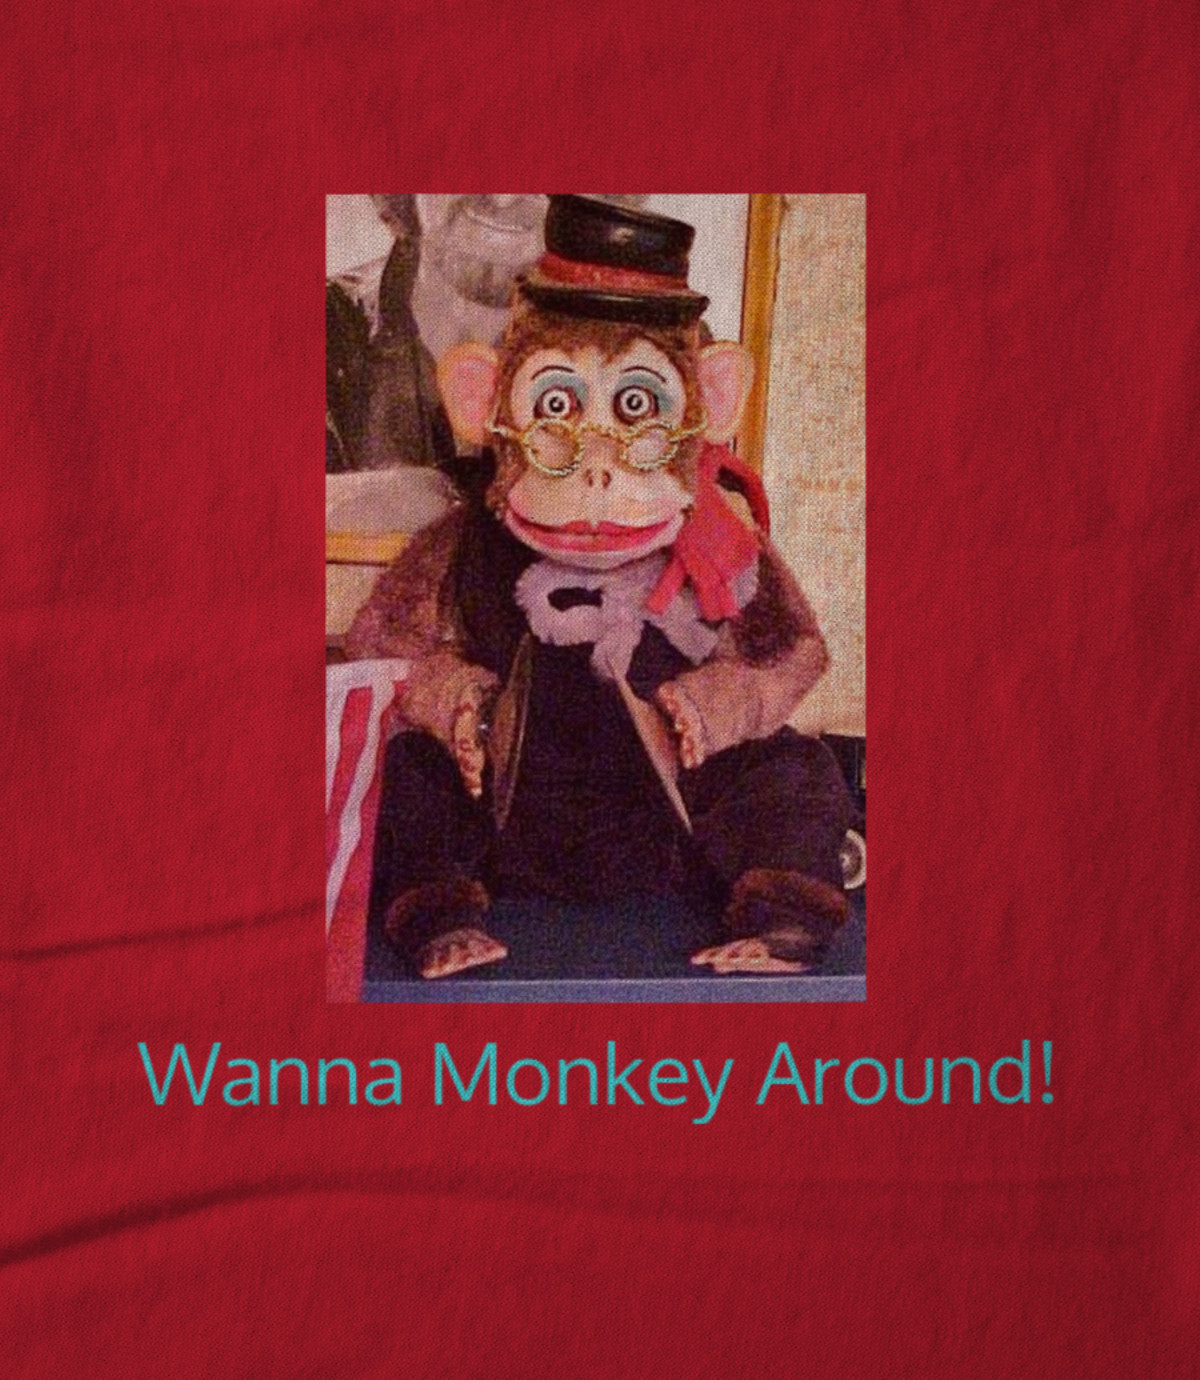 Matthew f  blowers iii wanna monkey around  1505393819